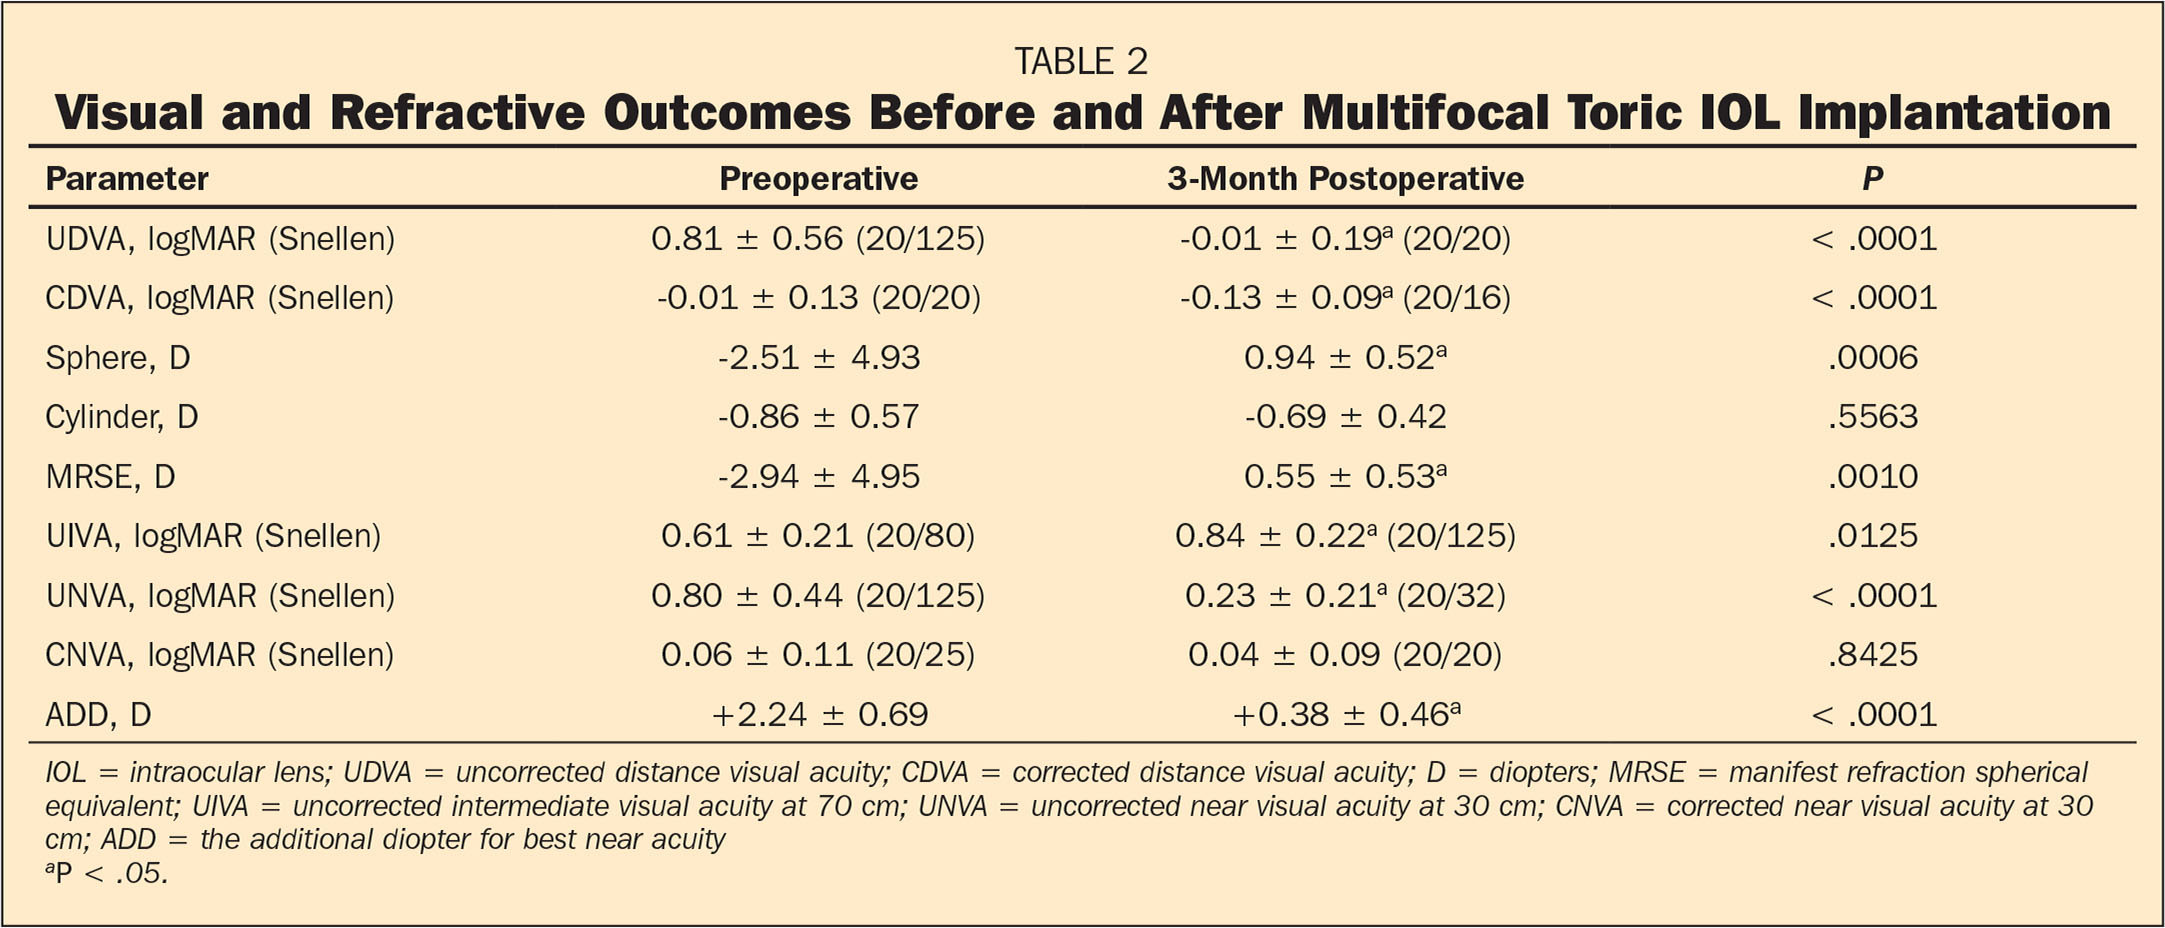 Visual and Refractive Outcomes Before and After Multifocal Toric IOL Implantation